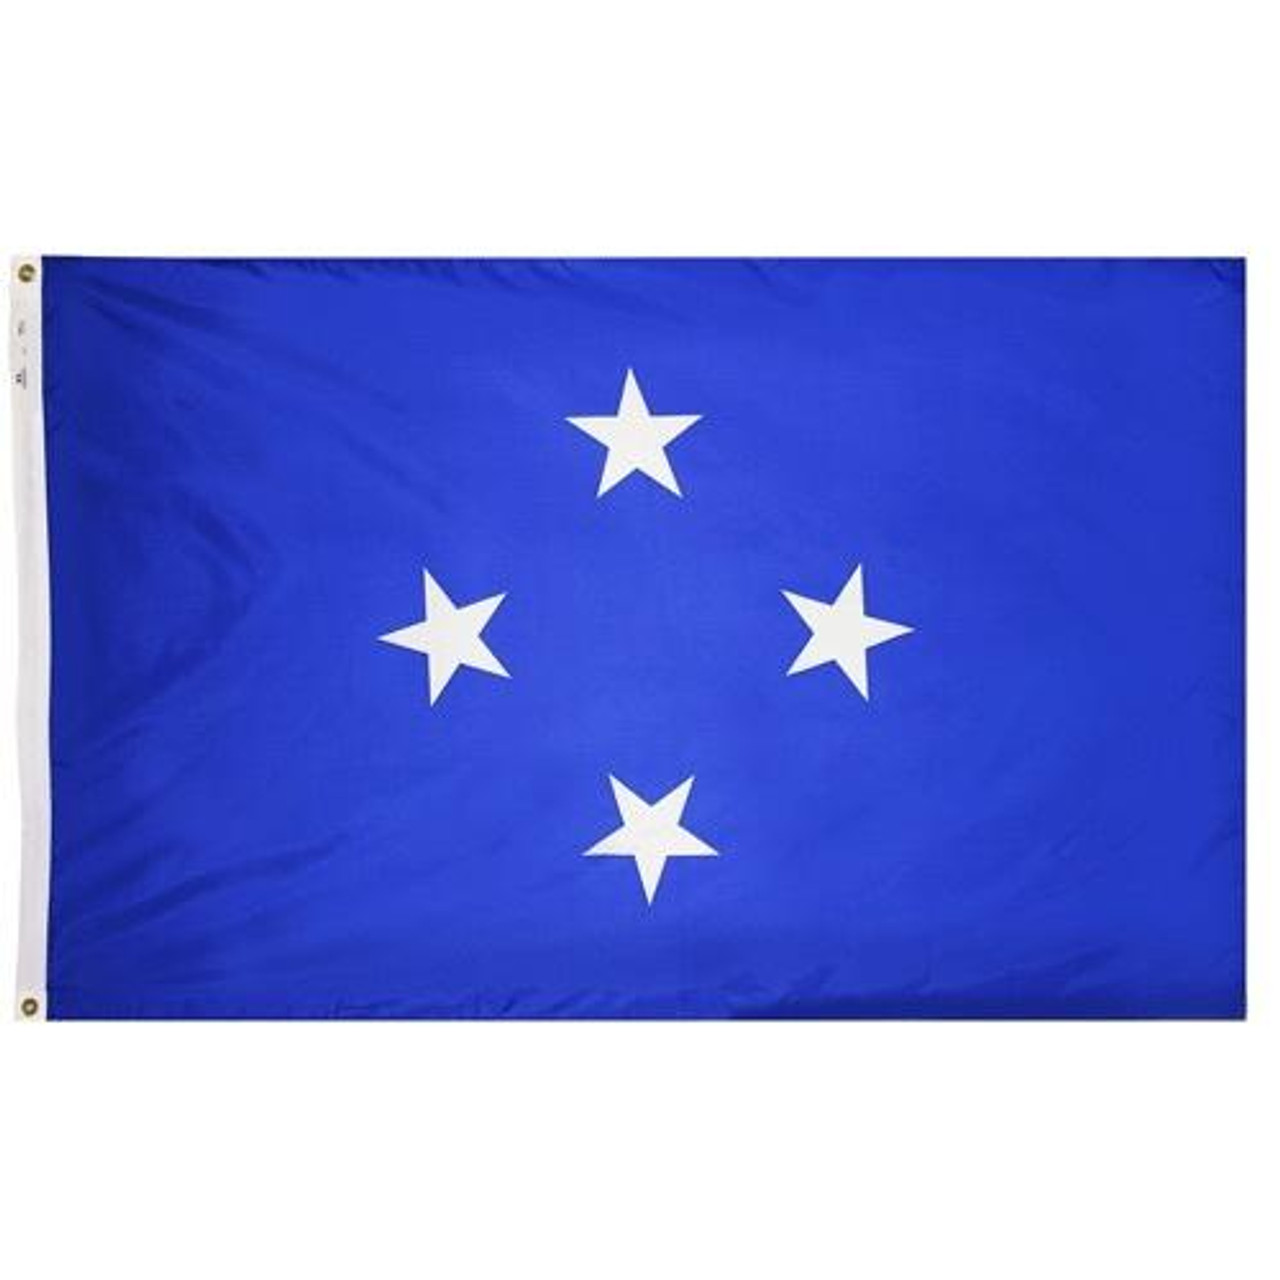 Micronesia Federated States Flag has a blue field with four white stars in the center